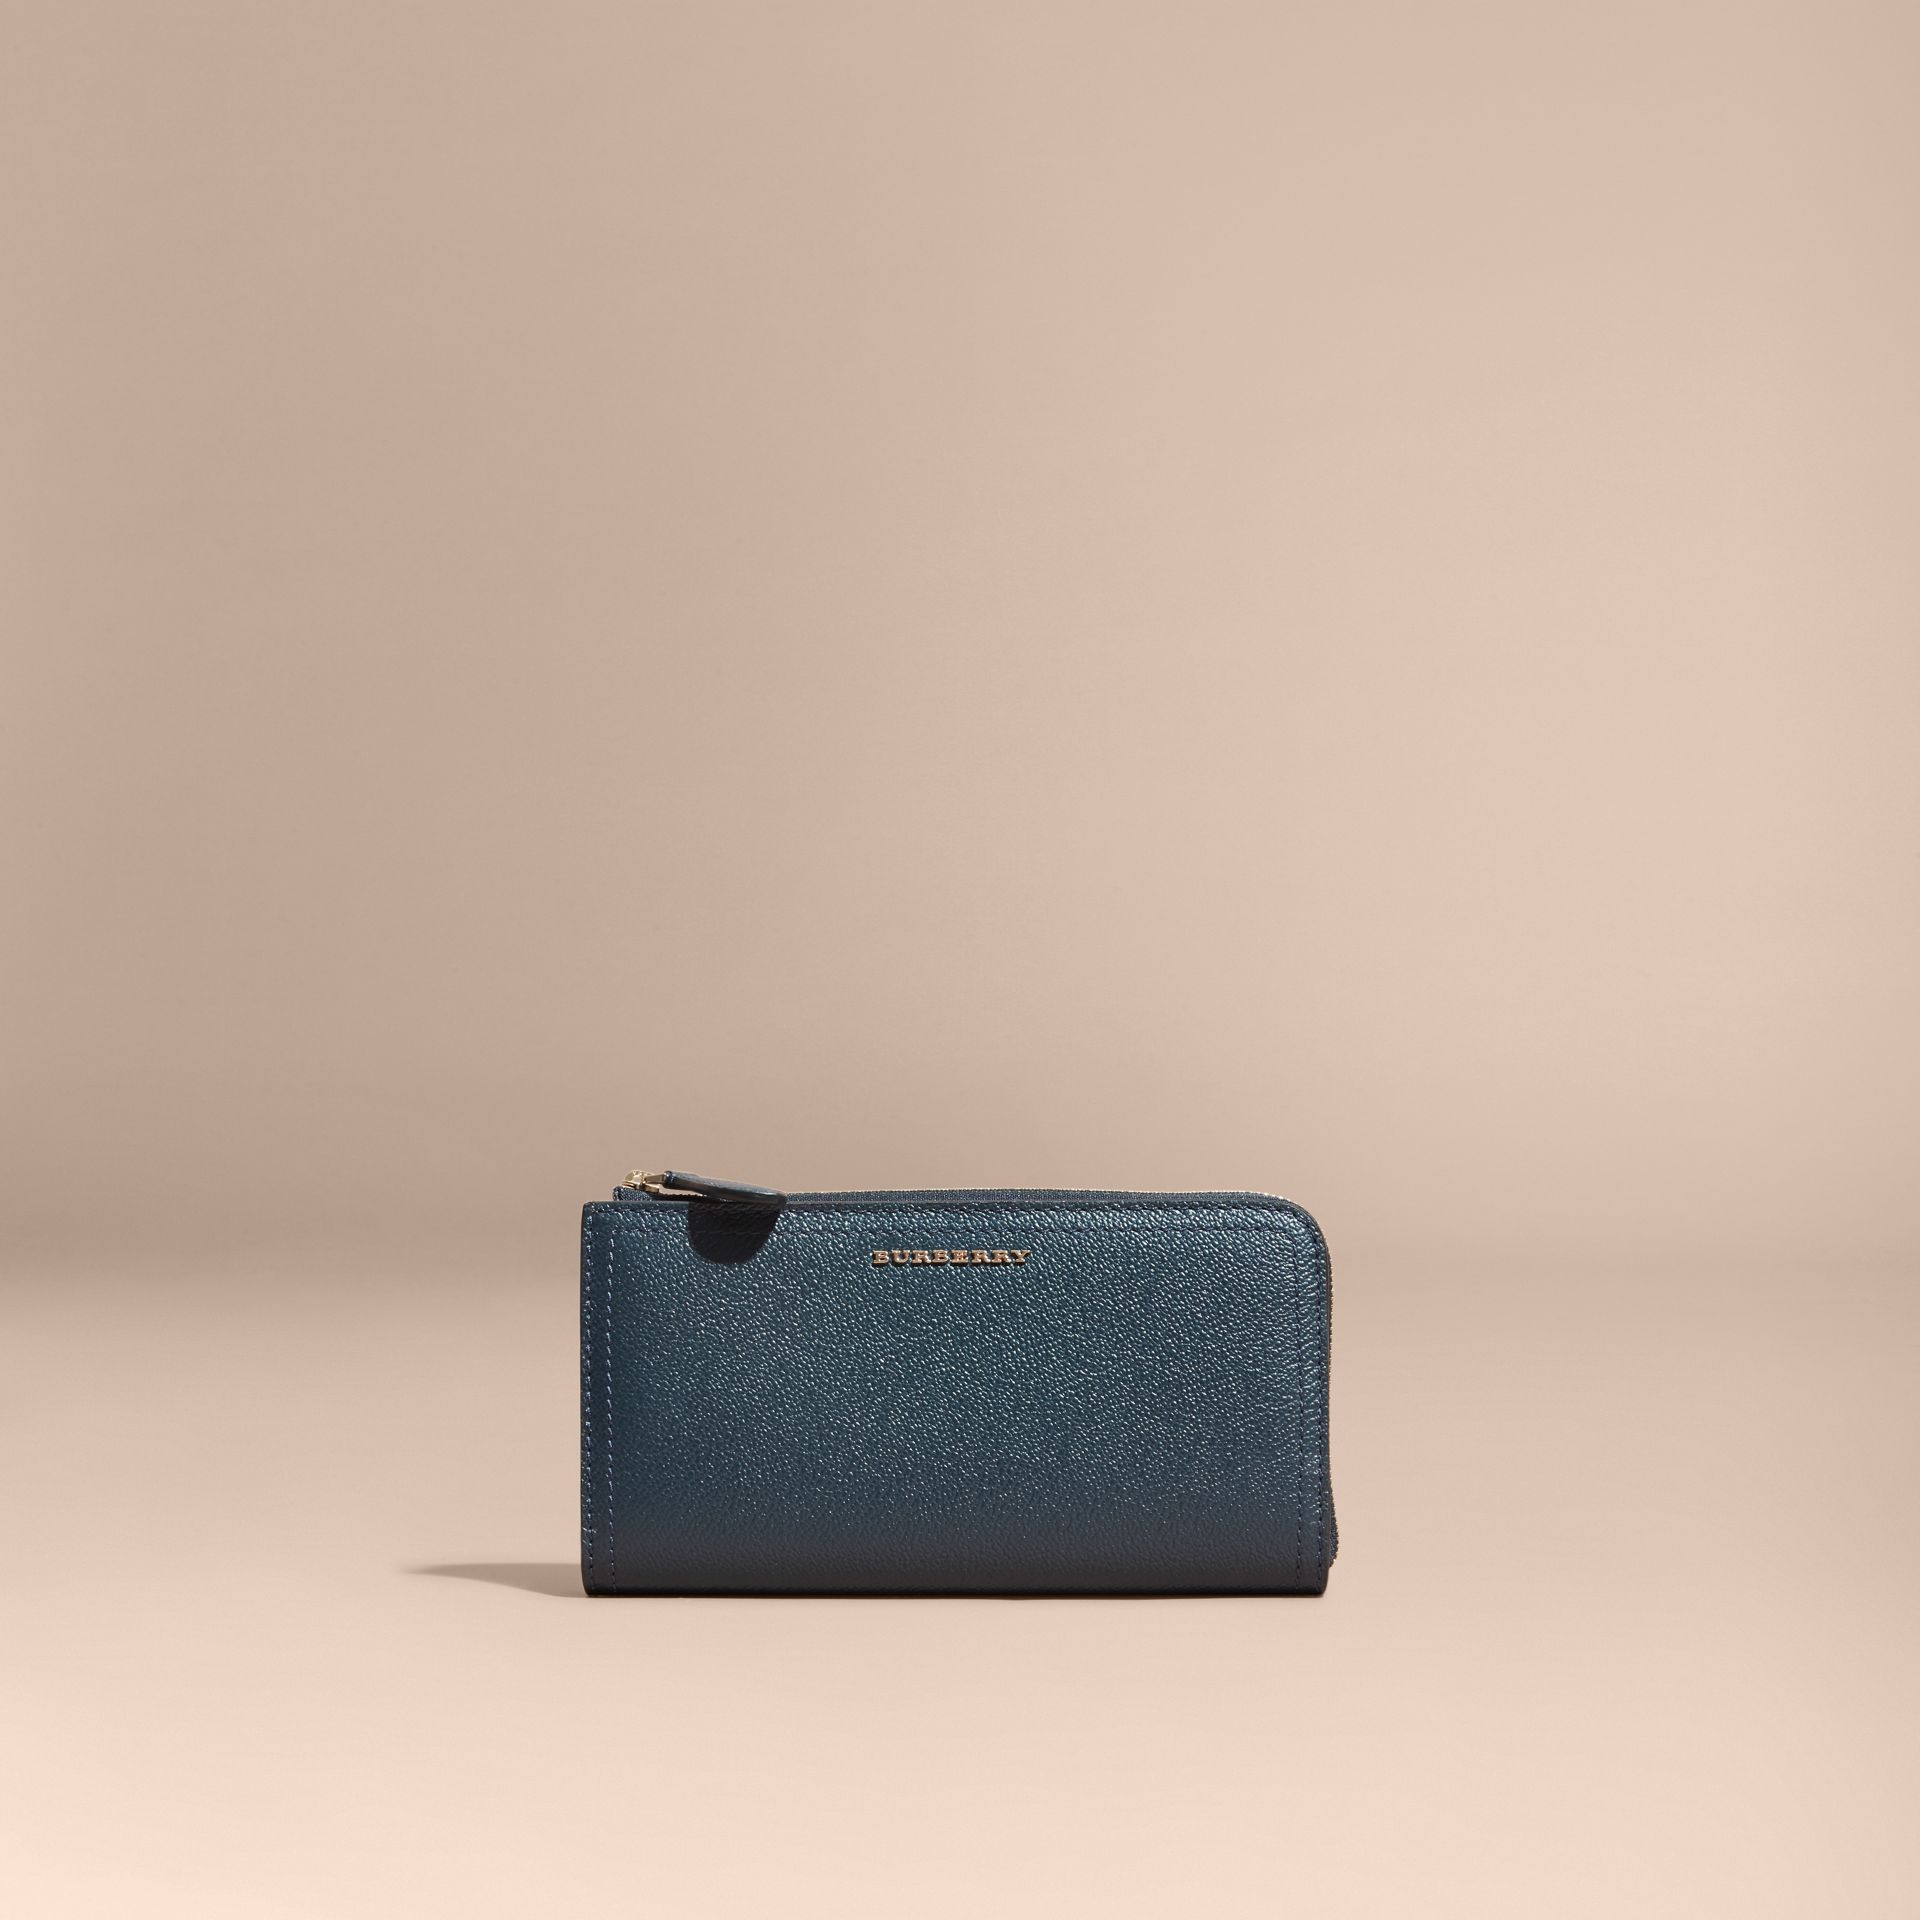 Grainy Leather Ziparound Wallet in Blue Carbon - Women | Burberry Canada - gallery image 6